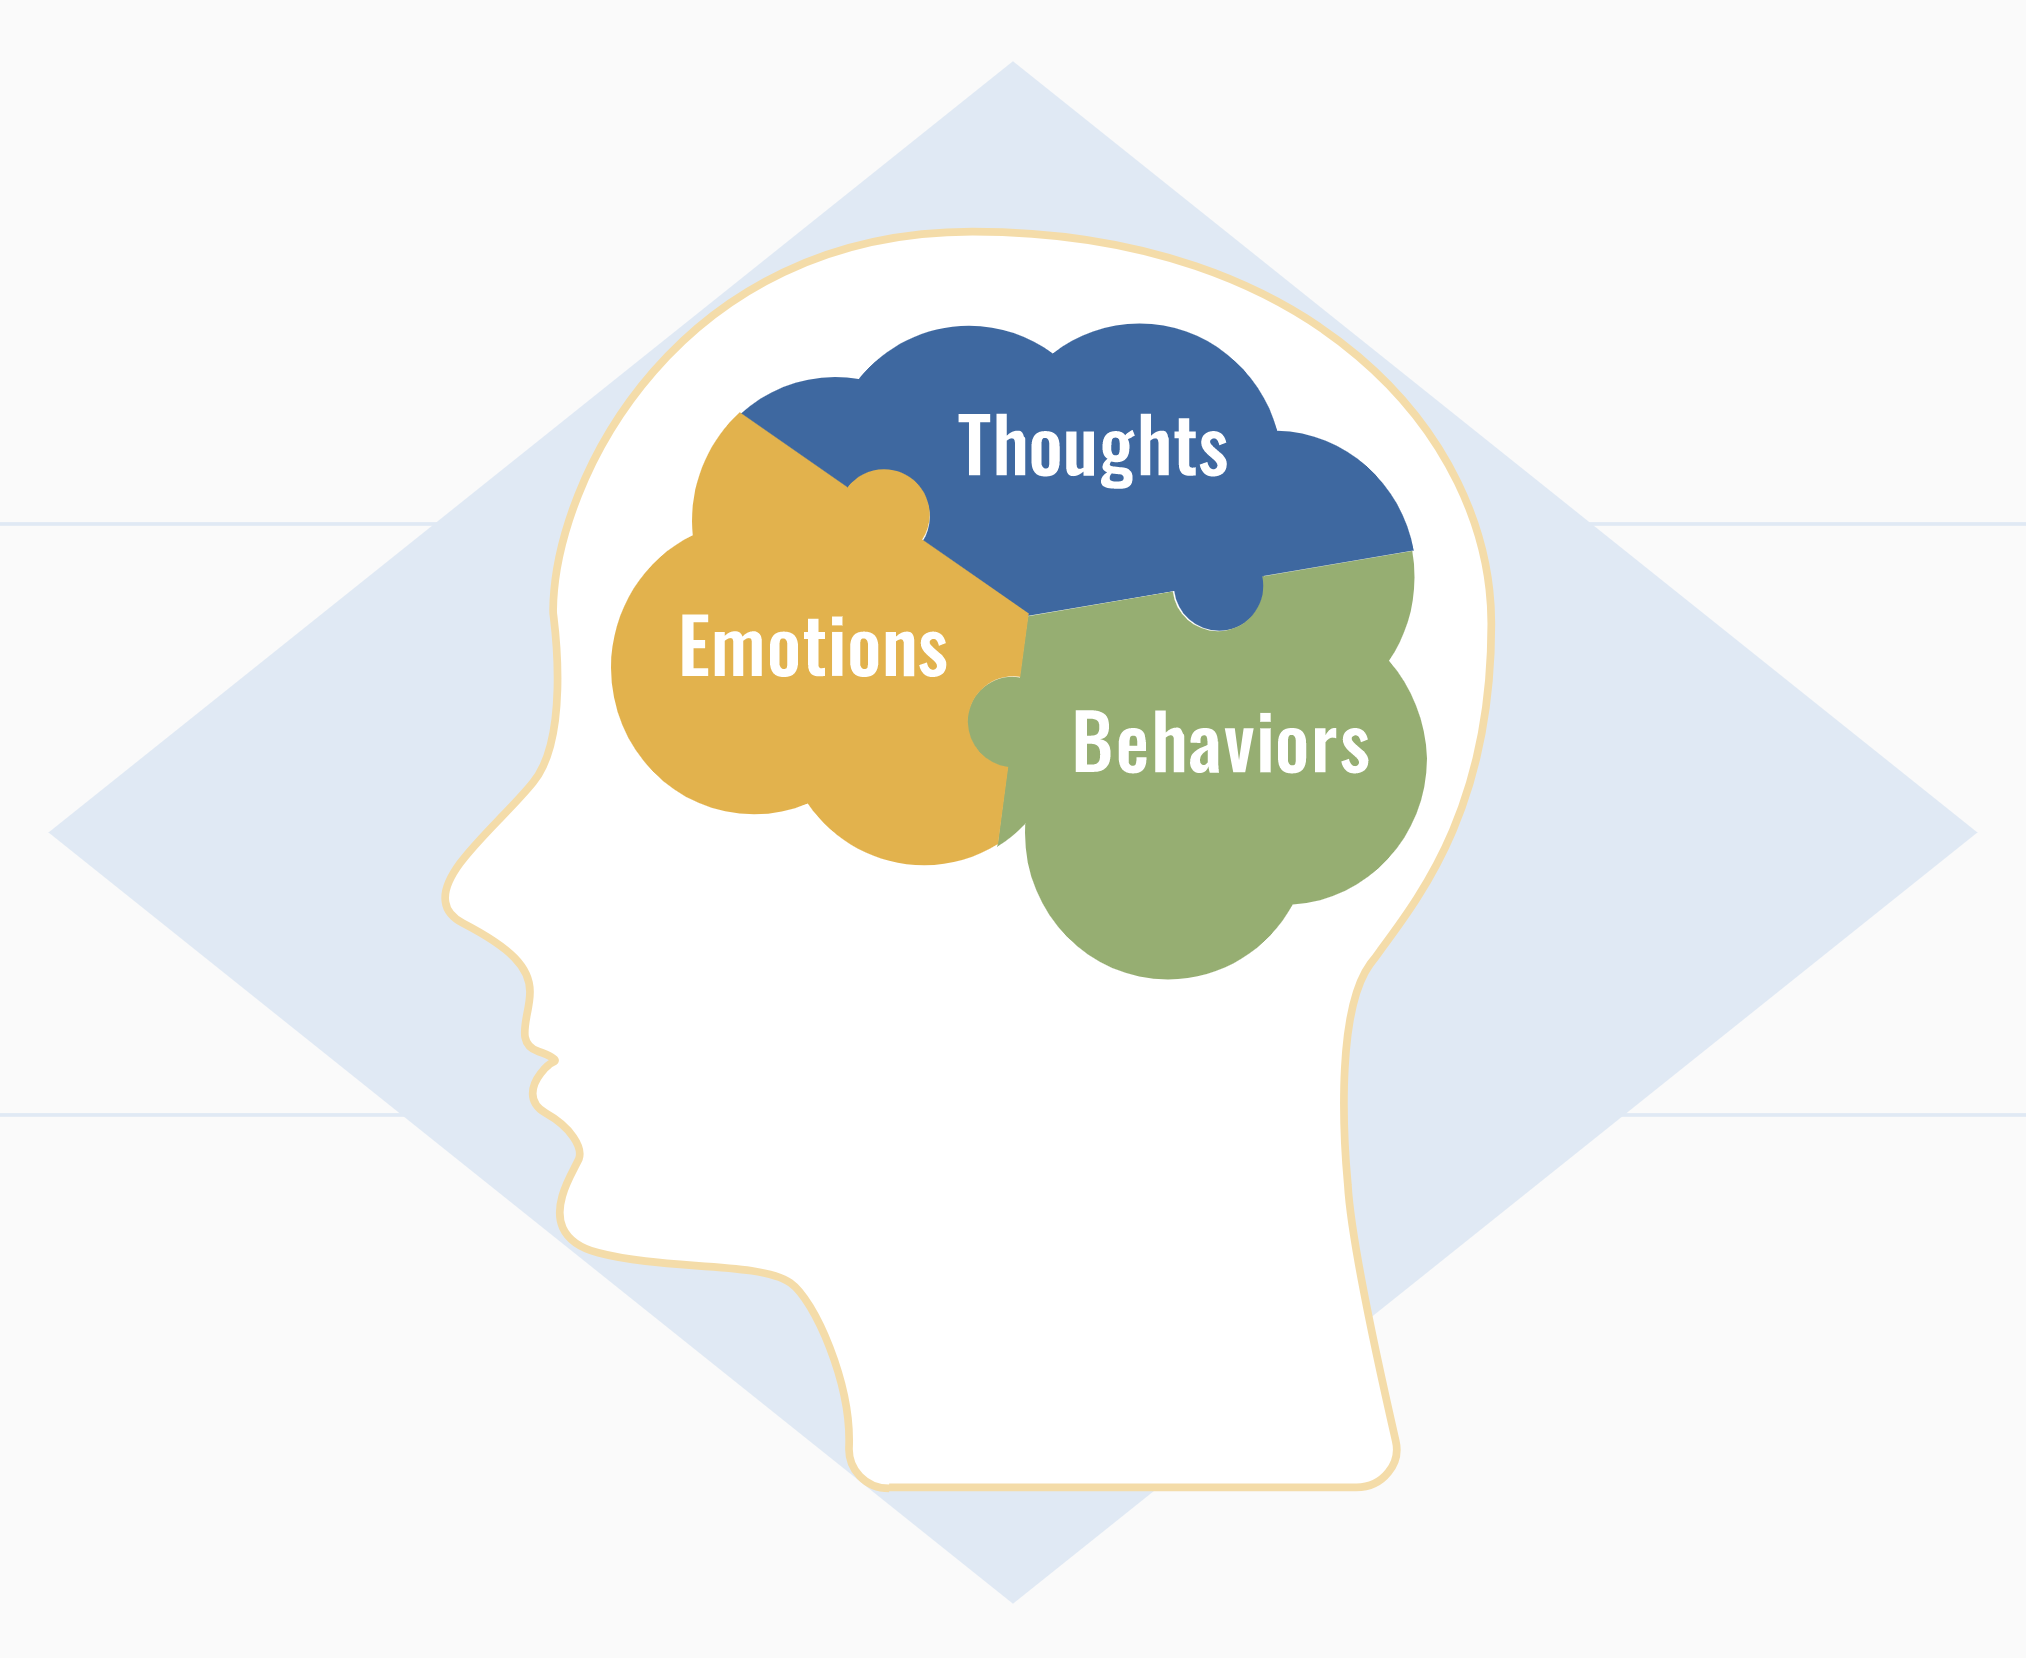 Cognitive behavioral therapy works by changing negative and unhelpful thoughts, behaviors, and emotions